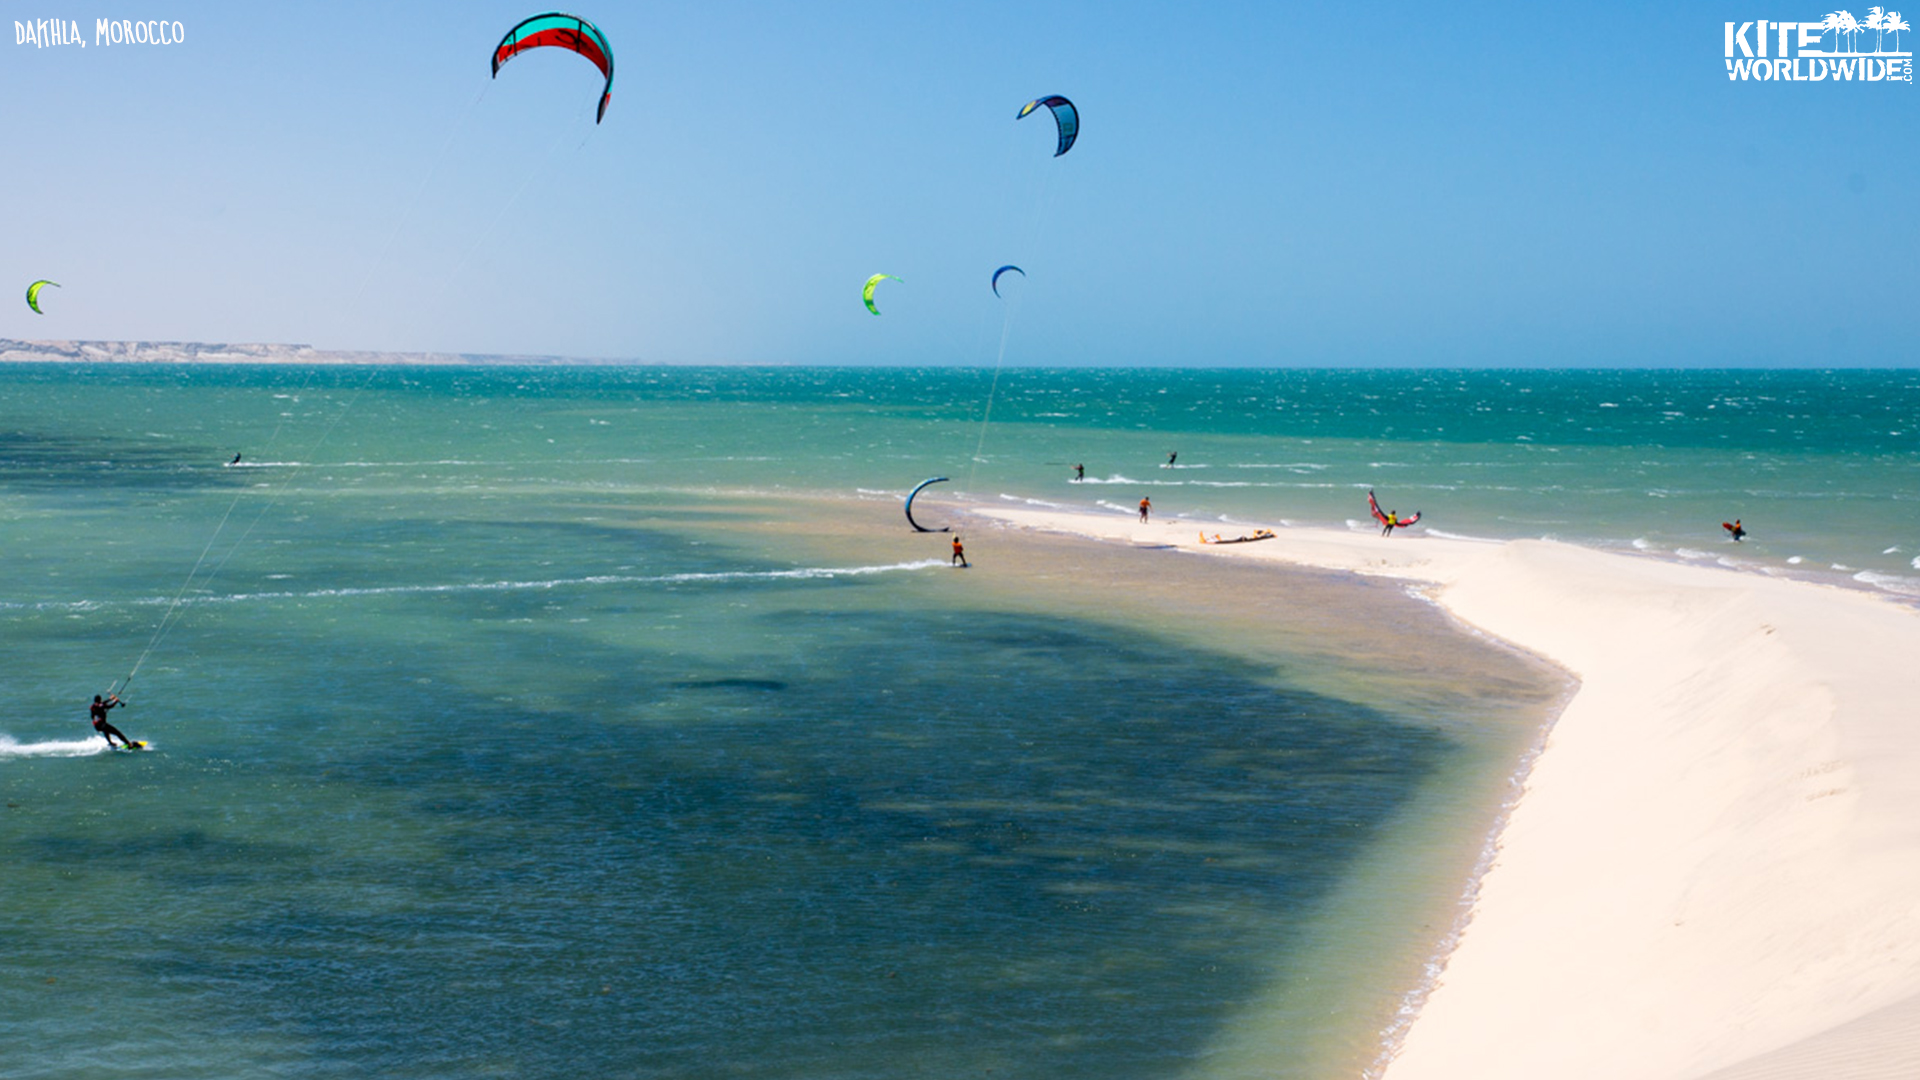 1920x1080 - Kitesurfing Wallpapers 30